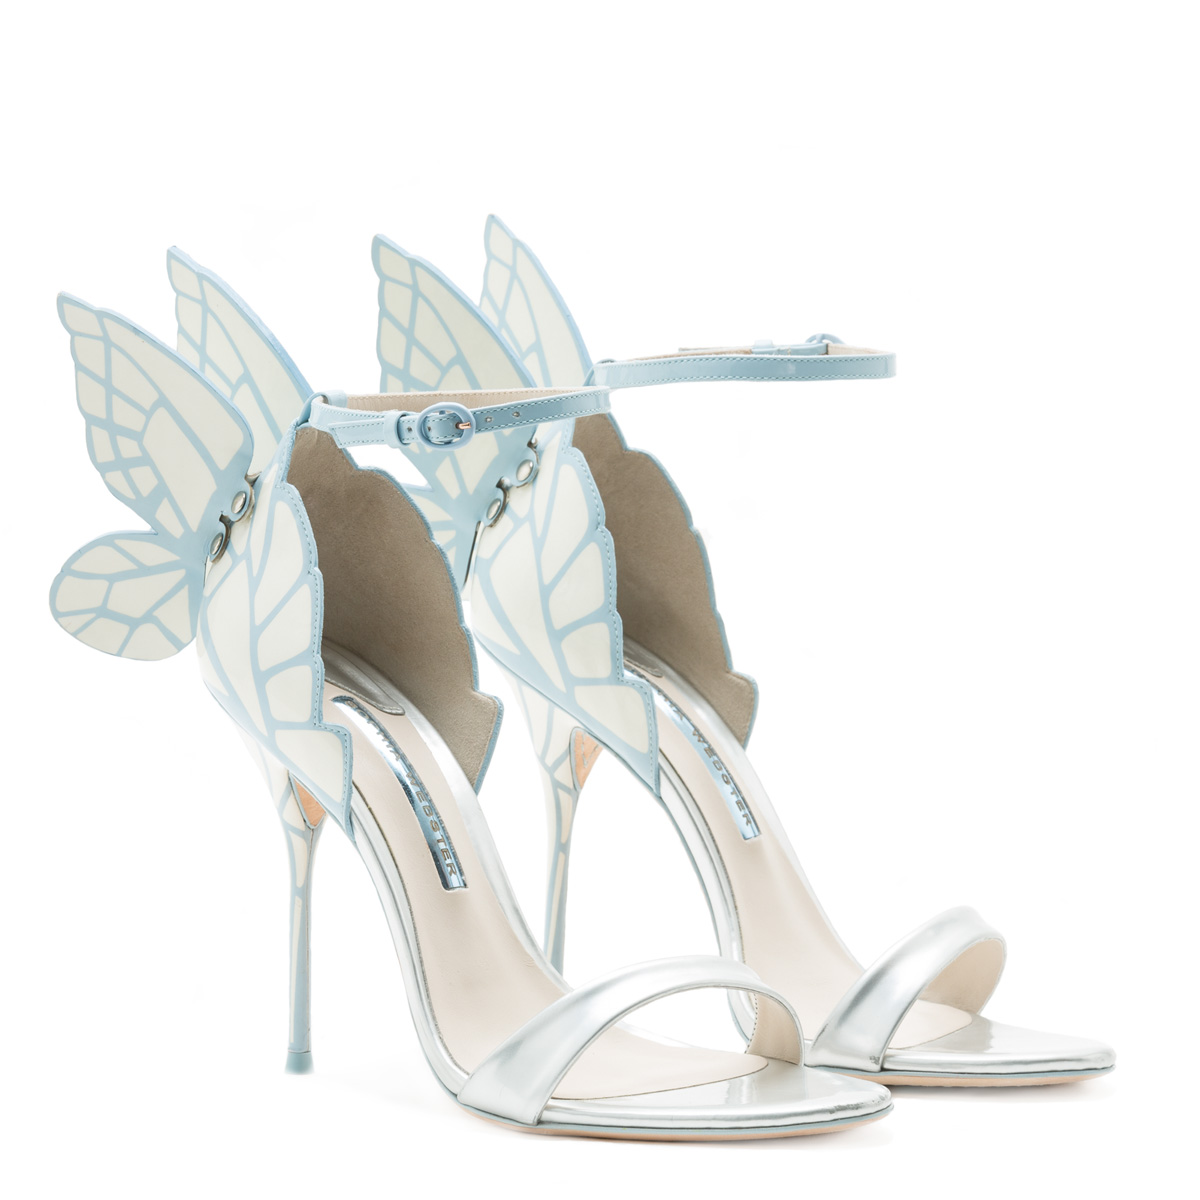 sophia webster bridal shoes photo - 1